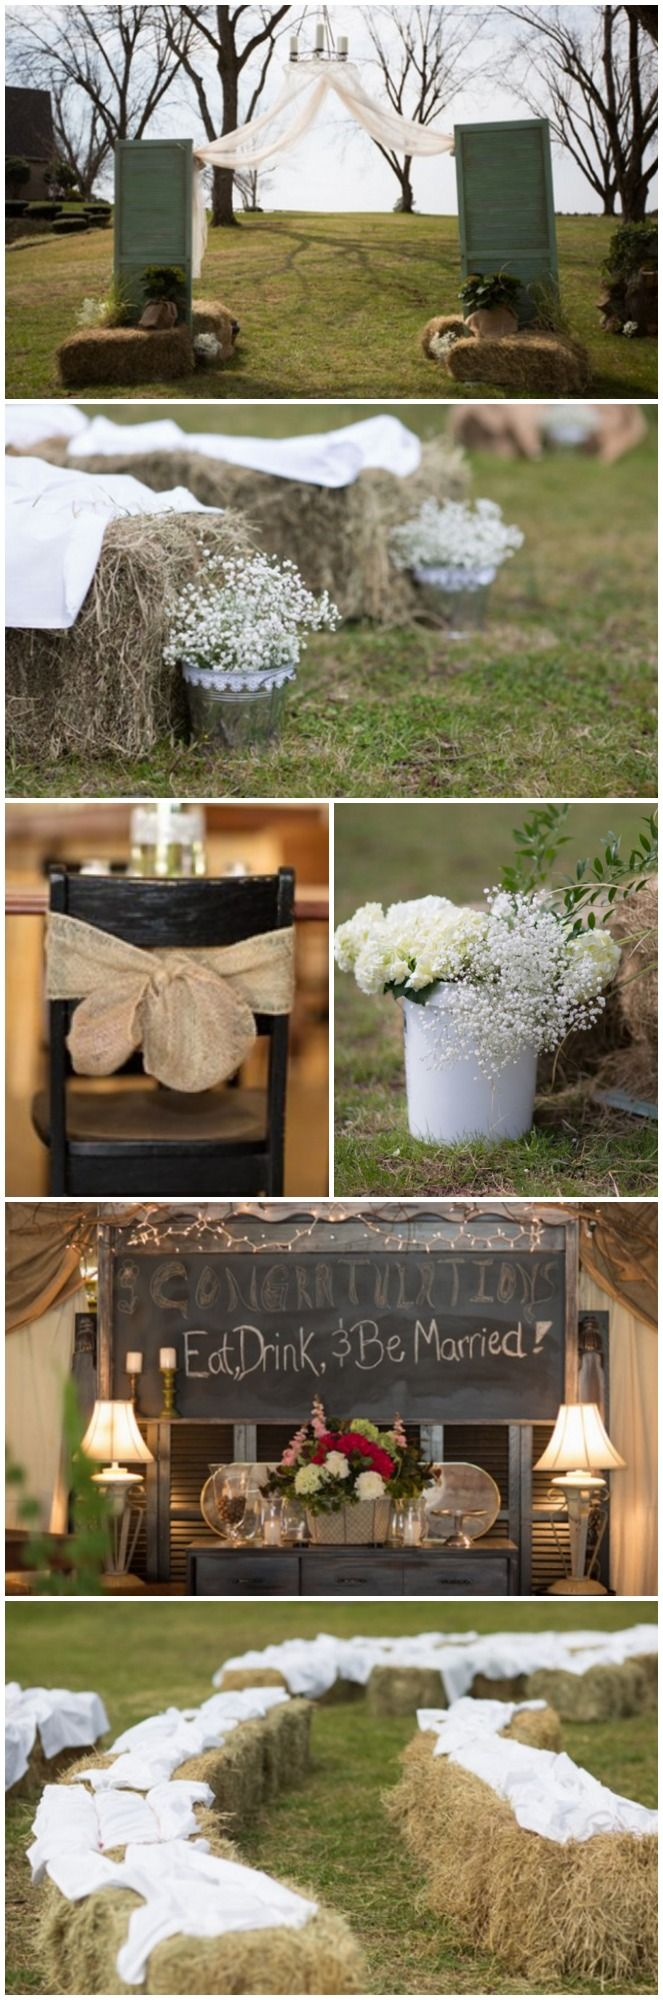 Ideas for a farm wedding! @Kayla Barkett Barkett Barkett Barkett Hawkinson